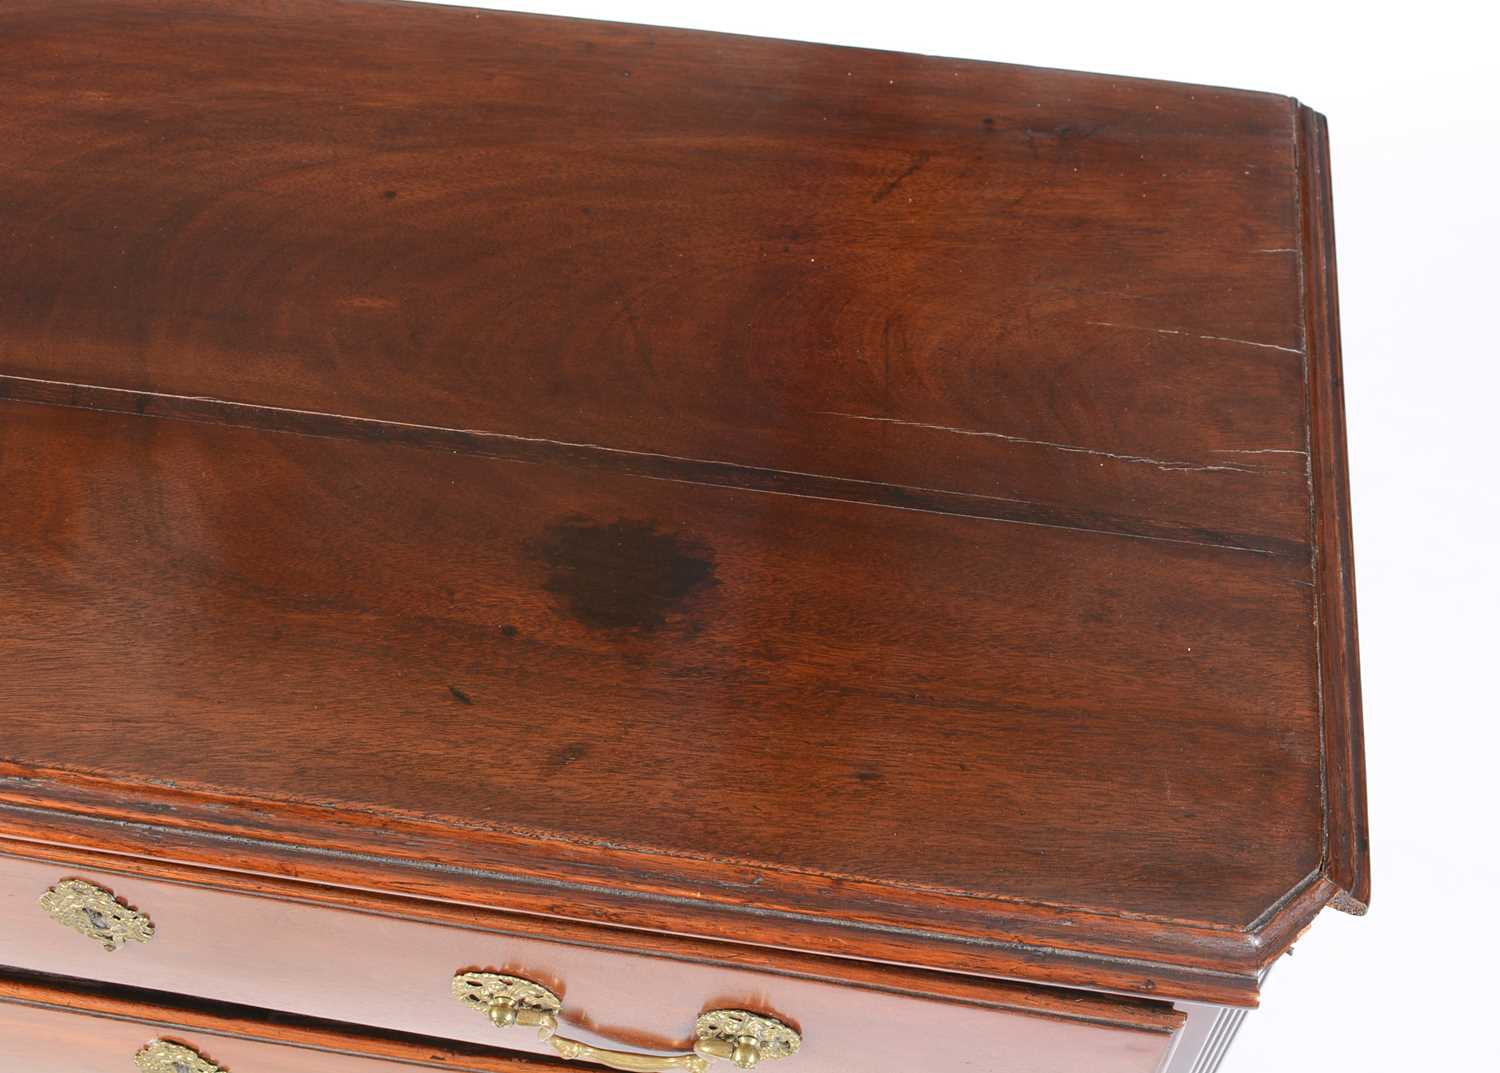 Late George III mahogany chest of drawers - Image 2 of 5